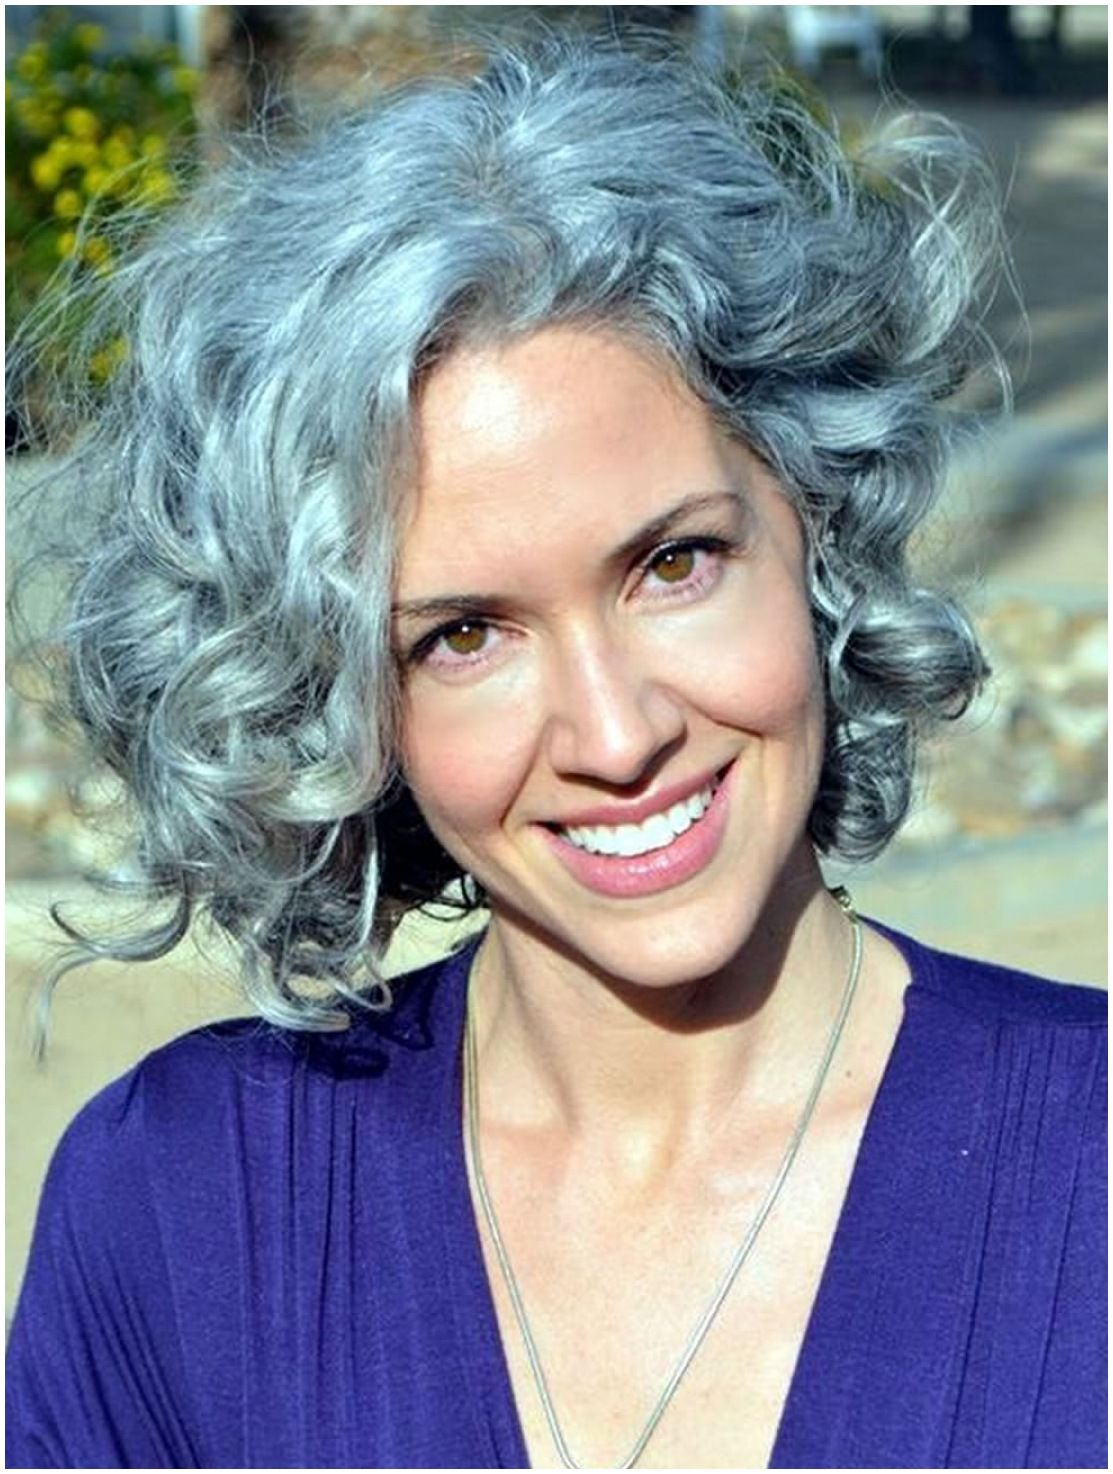 10 Stunning Short Curly Haircut Styles for Older Women (Updated 2021) 35818bace22c522e16d5a55e00ae5548